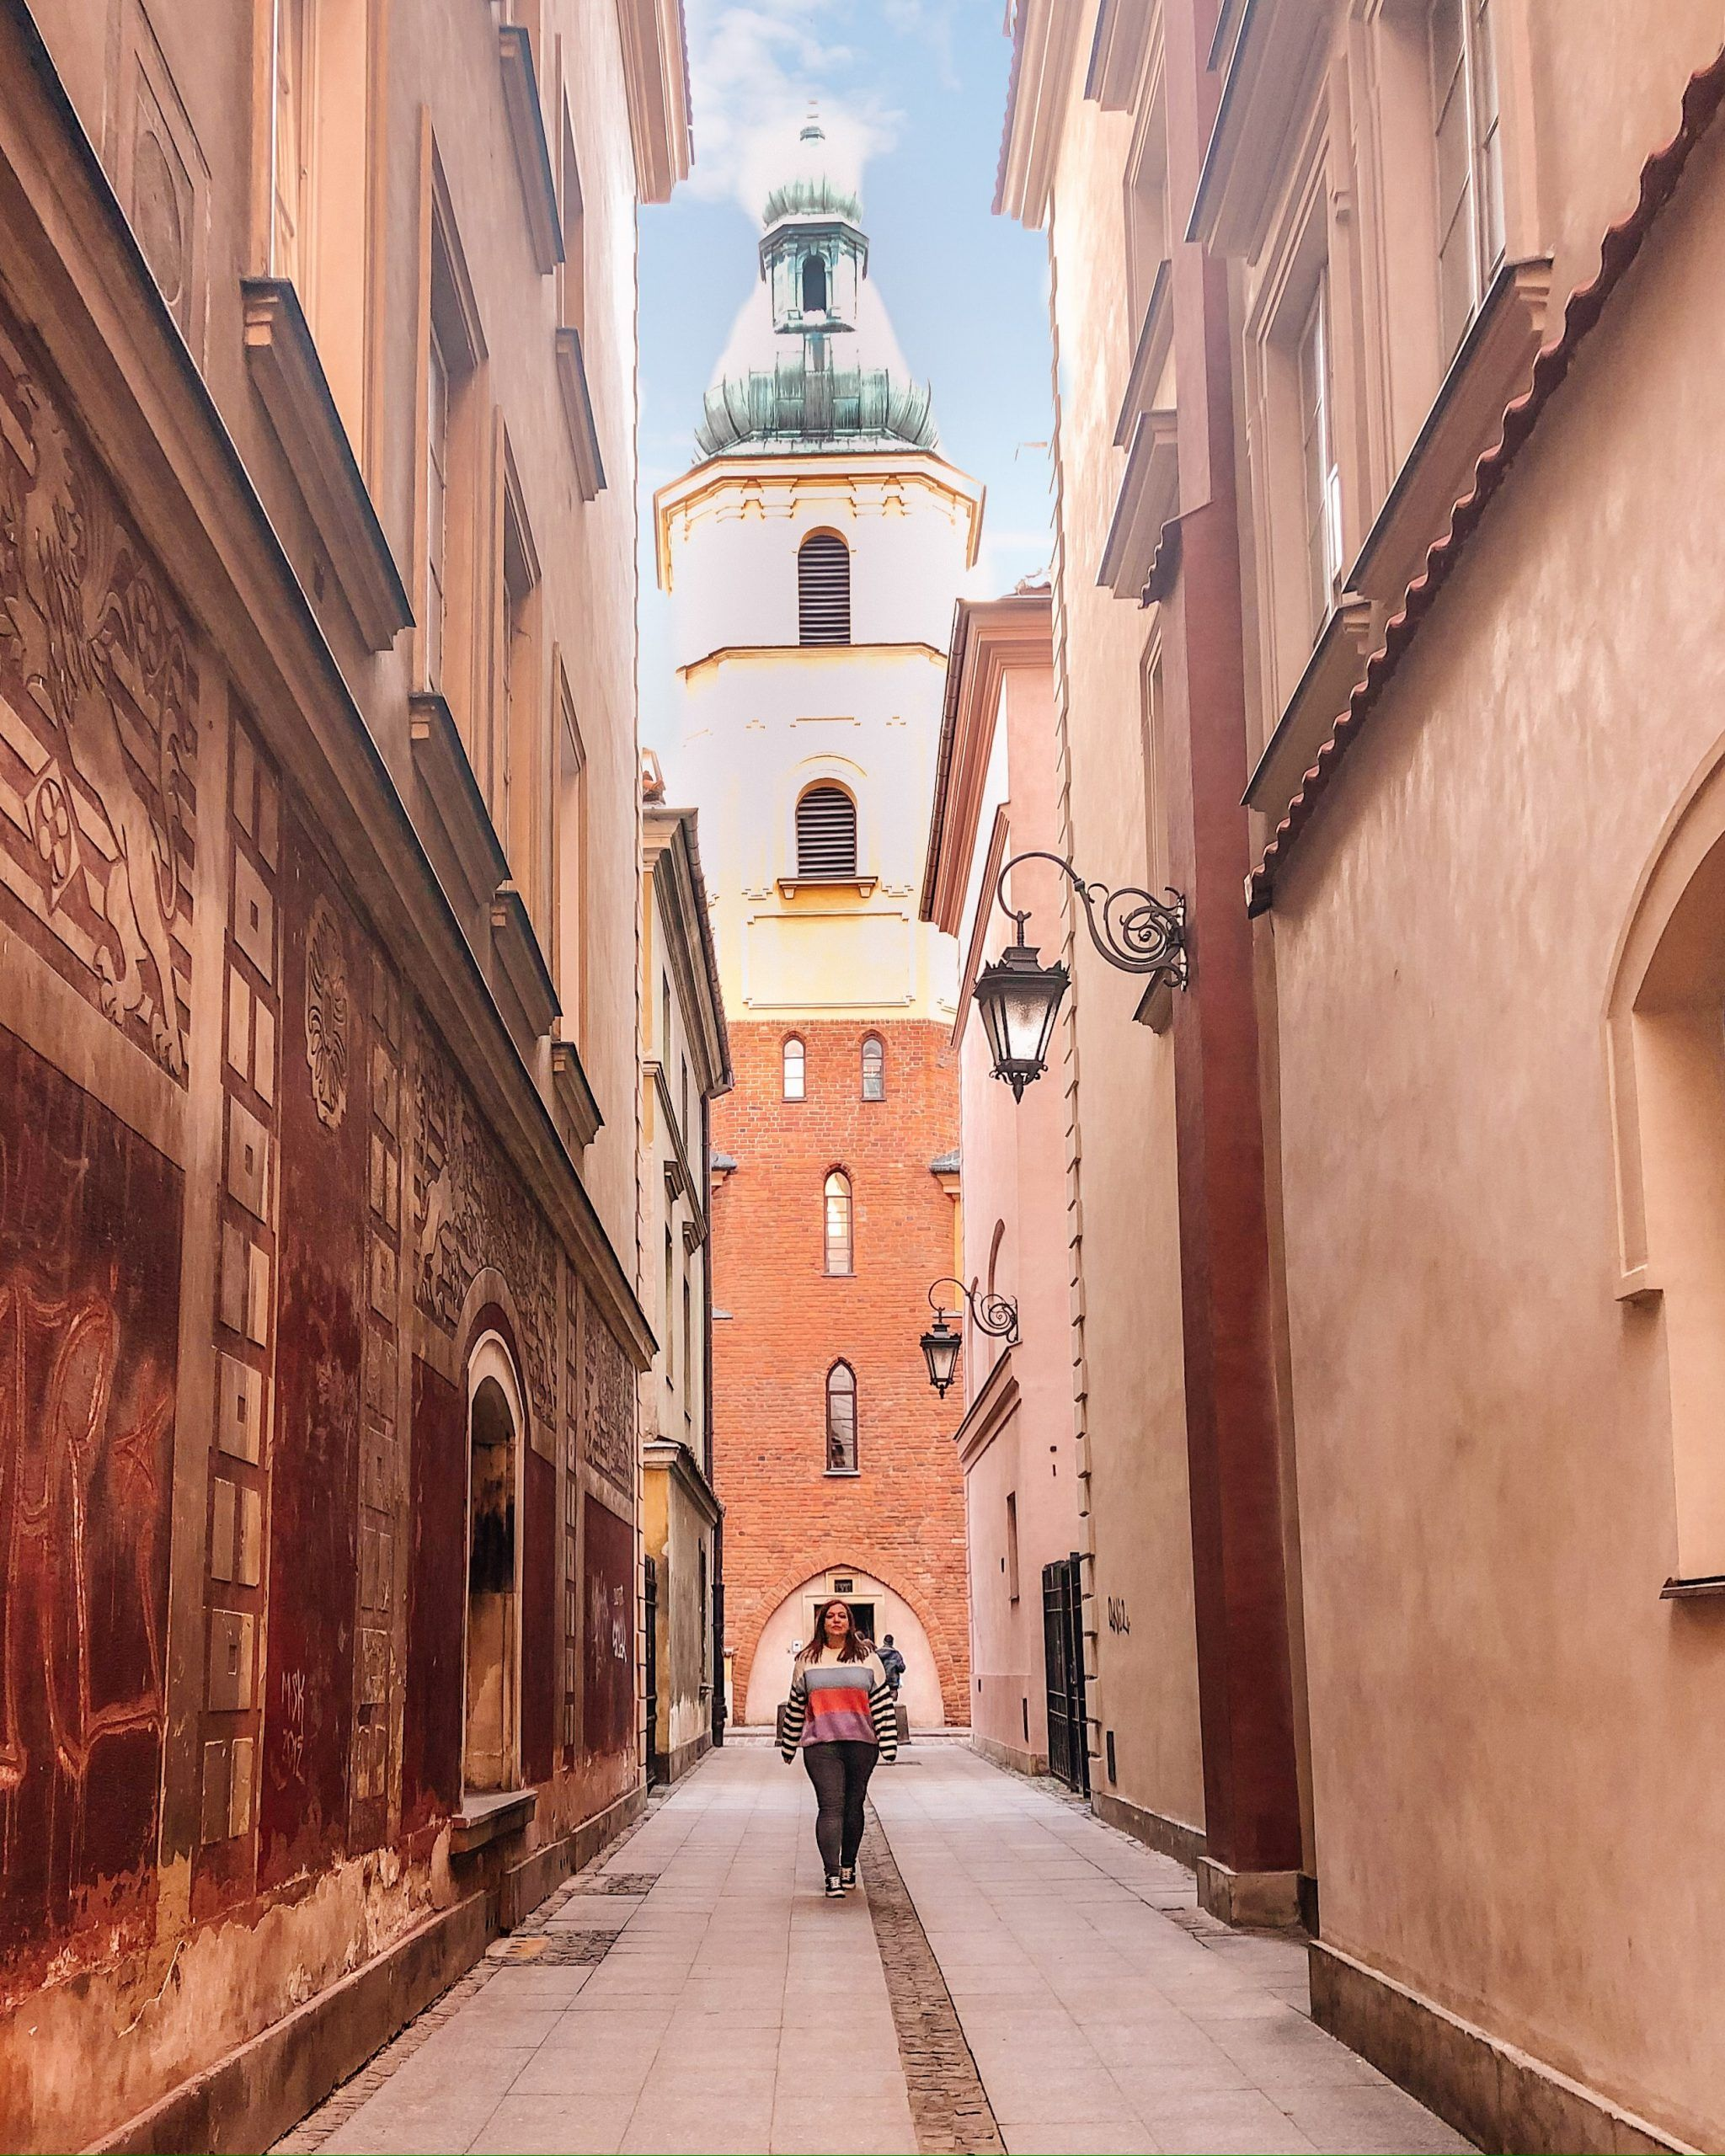 Warsaw, Poland is one of Europe's gems. Think pastel buildings, cute alleyways, amazing coffee and the most delicious rose-jam donuts. Not only that but it is full of the most beautiful places that will bring your Instagram to the next level. Warsaw | Warsaw Poland | Instagram Spots | Warsaw Photography | Best Instagram Spots Warsaw | Things to do in Warsaw | Best Cities in Europe | Warsaw Poland Best Things To Do | Warsaw Poland Photography